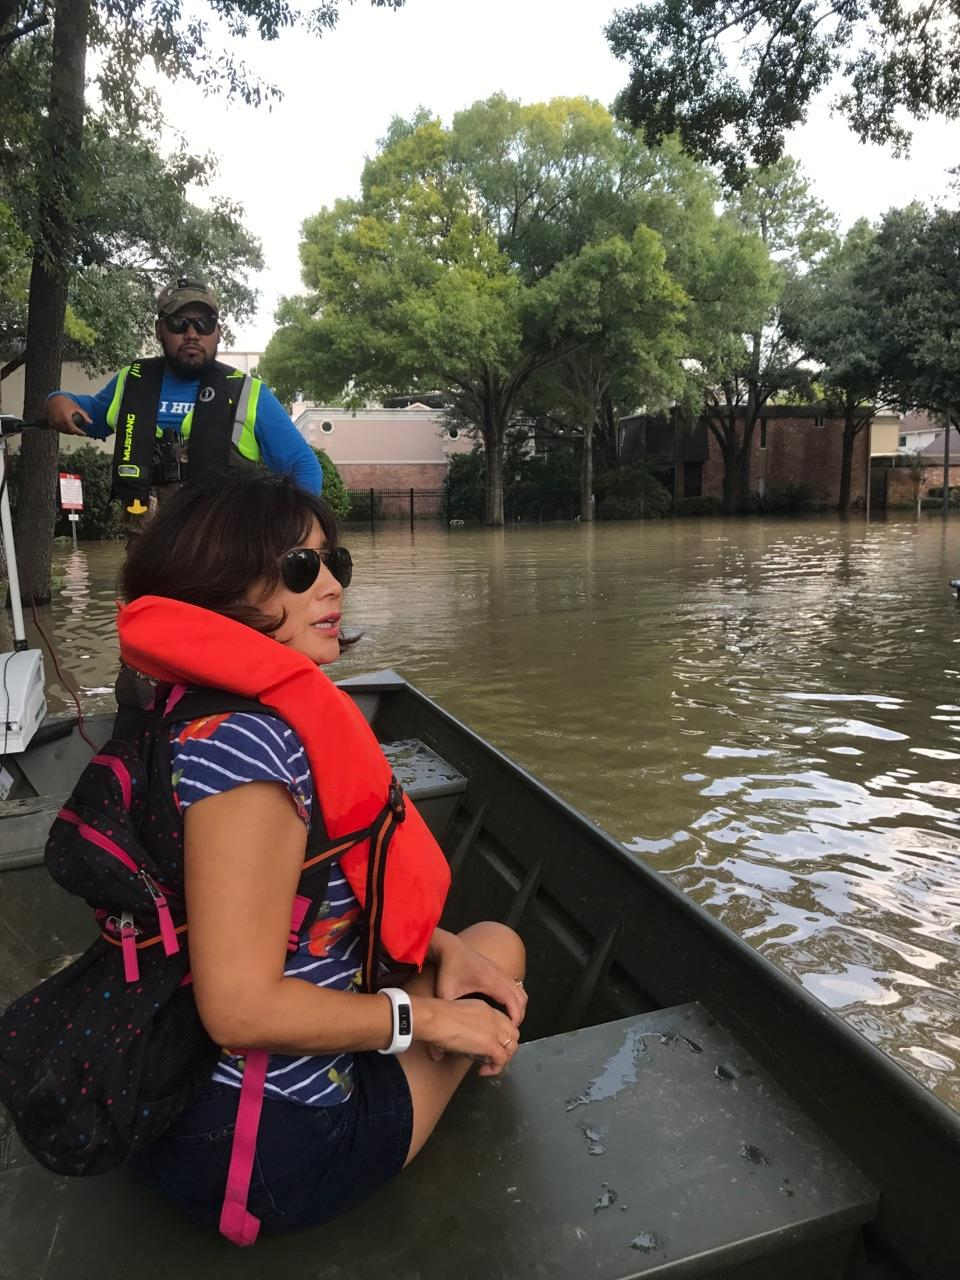 West Houston homeowner Mary Sit surveys flooding in her neighborhood caused by a release of dam water several days after Hurricane Harvey made landfall. Photo credit goes to Amy Sit Duvall